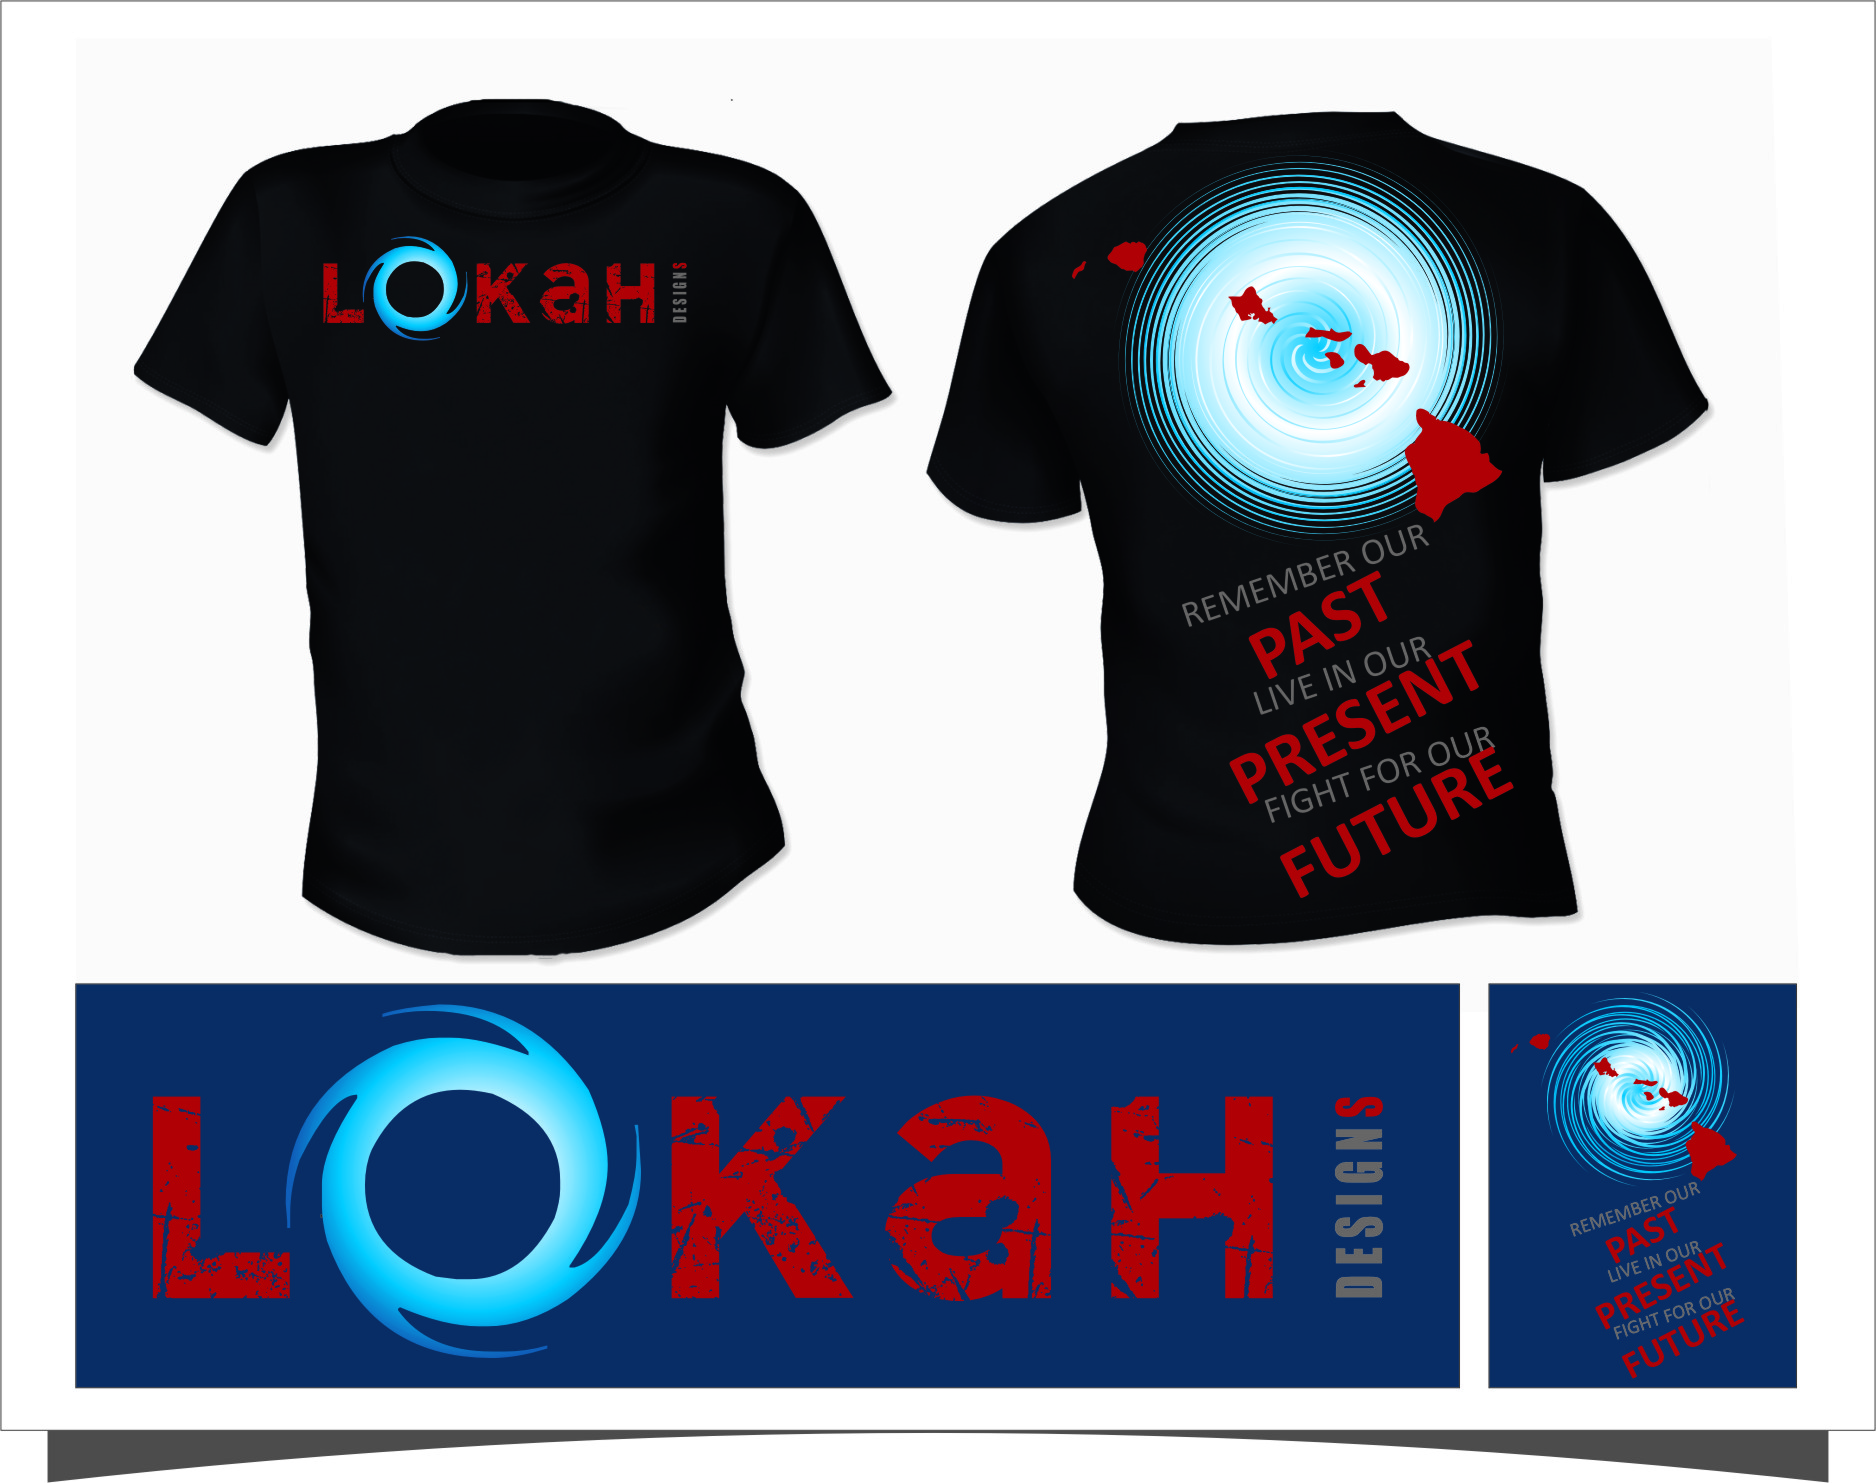 Clothing Design by Ngepet_art - Entry No. 136 in the Clothing Design Contest Creative Clothing Design for LOKAHI designs.